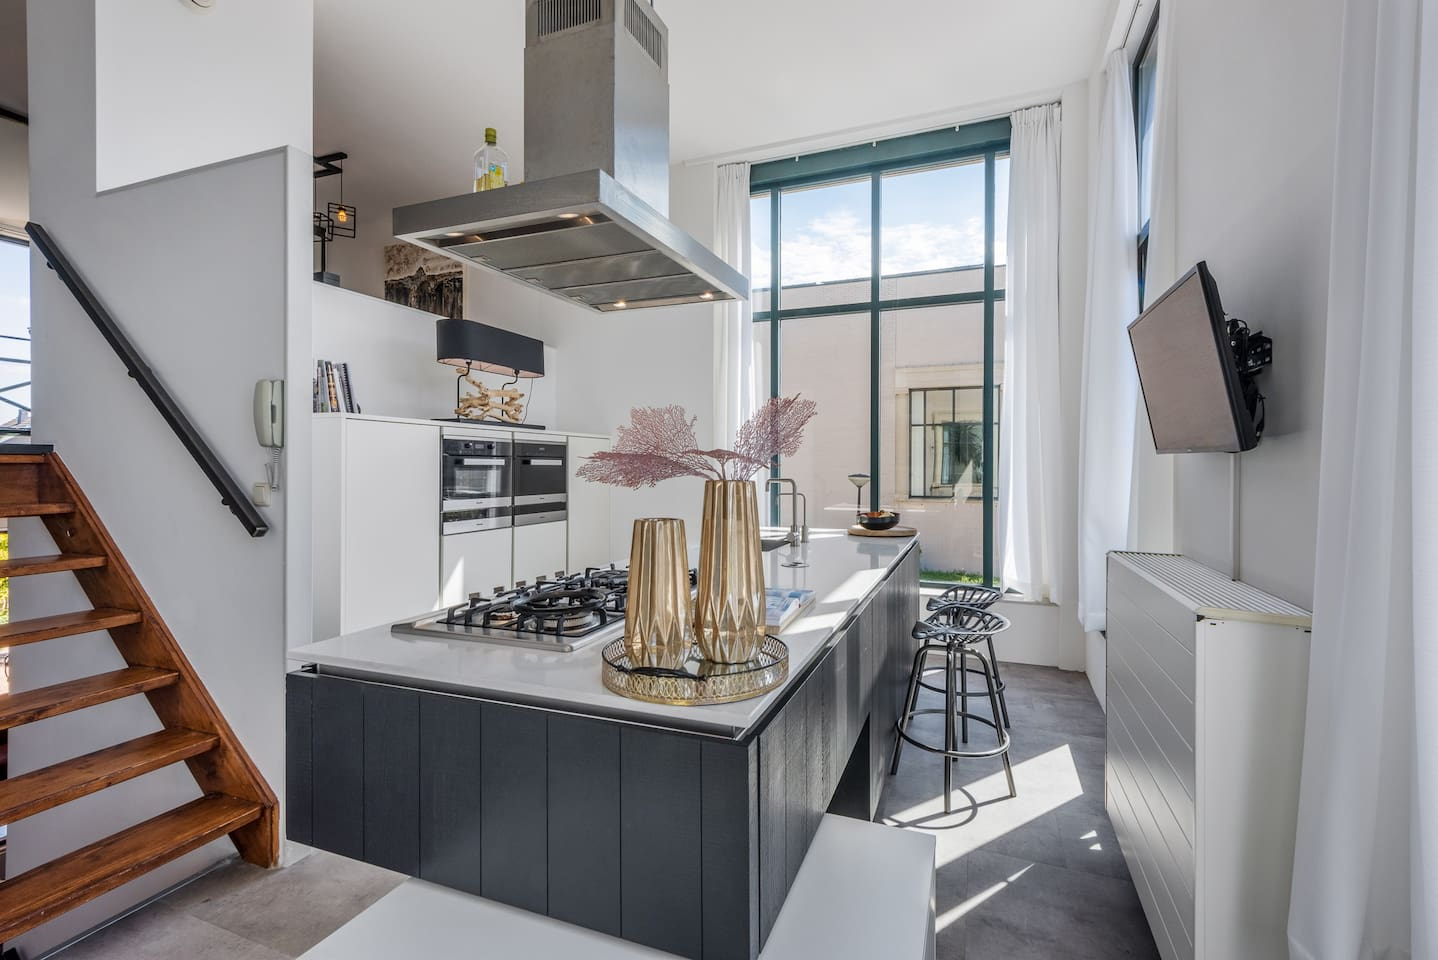 Our beautiful high-end kitchen with all the equipments you need! Double ovens (steam and hot air) dish washer, hot water tap, 6 burner gas stove, SMART TV with netflix. Georgious high windows and ceilings and large balcony attached!